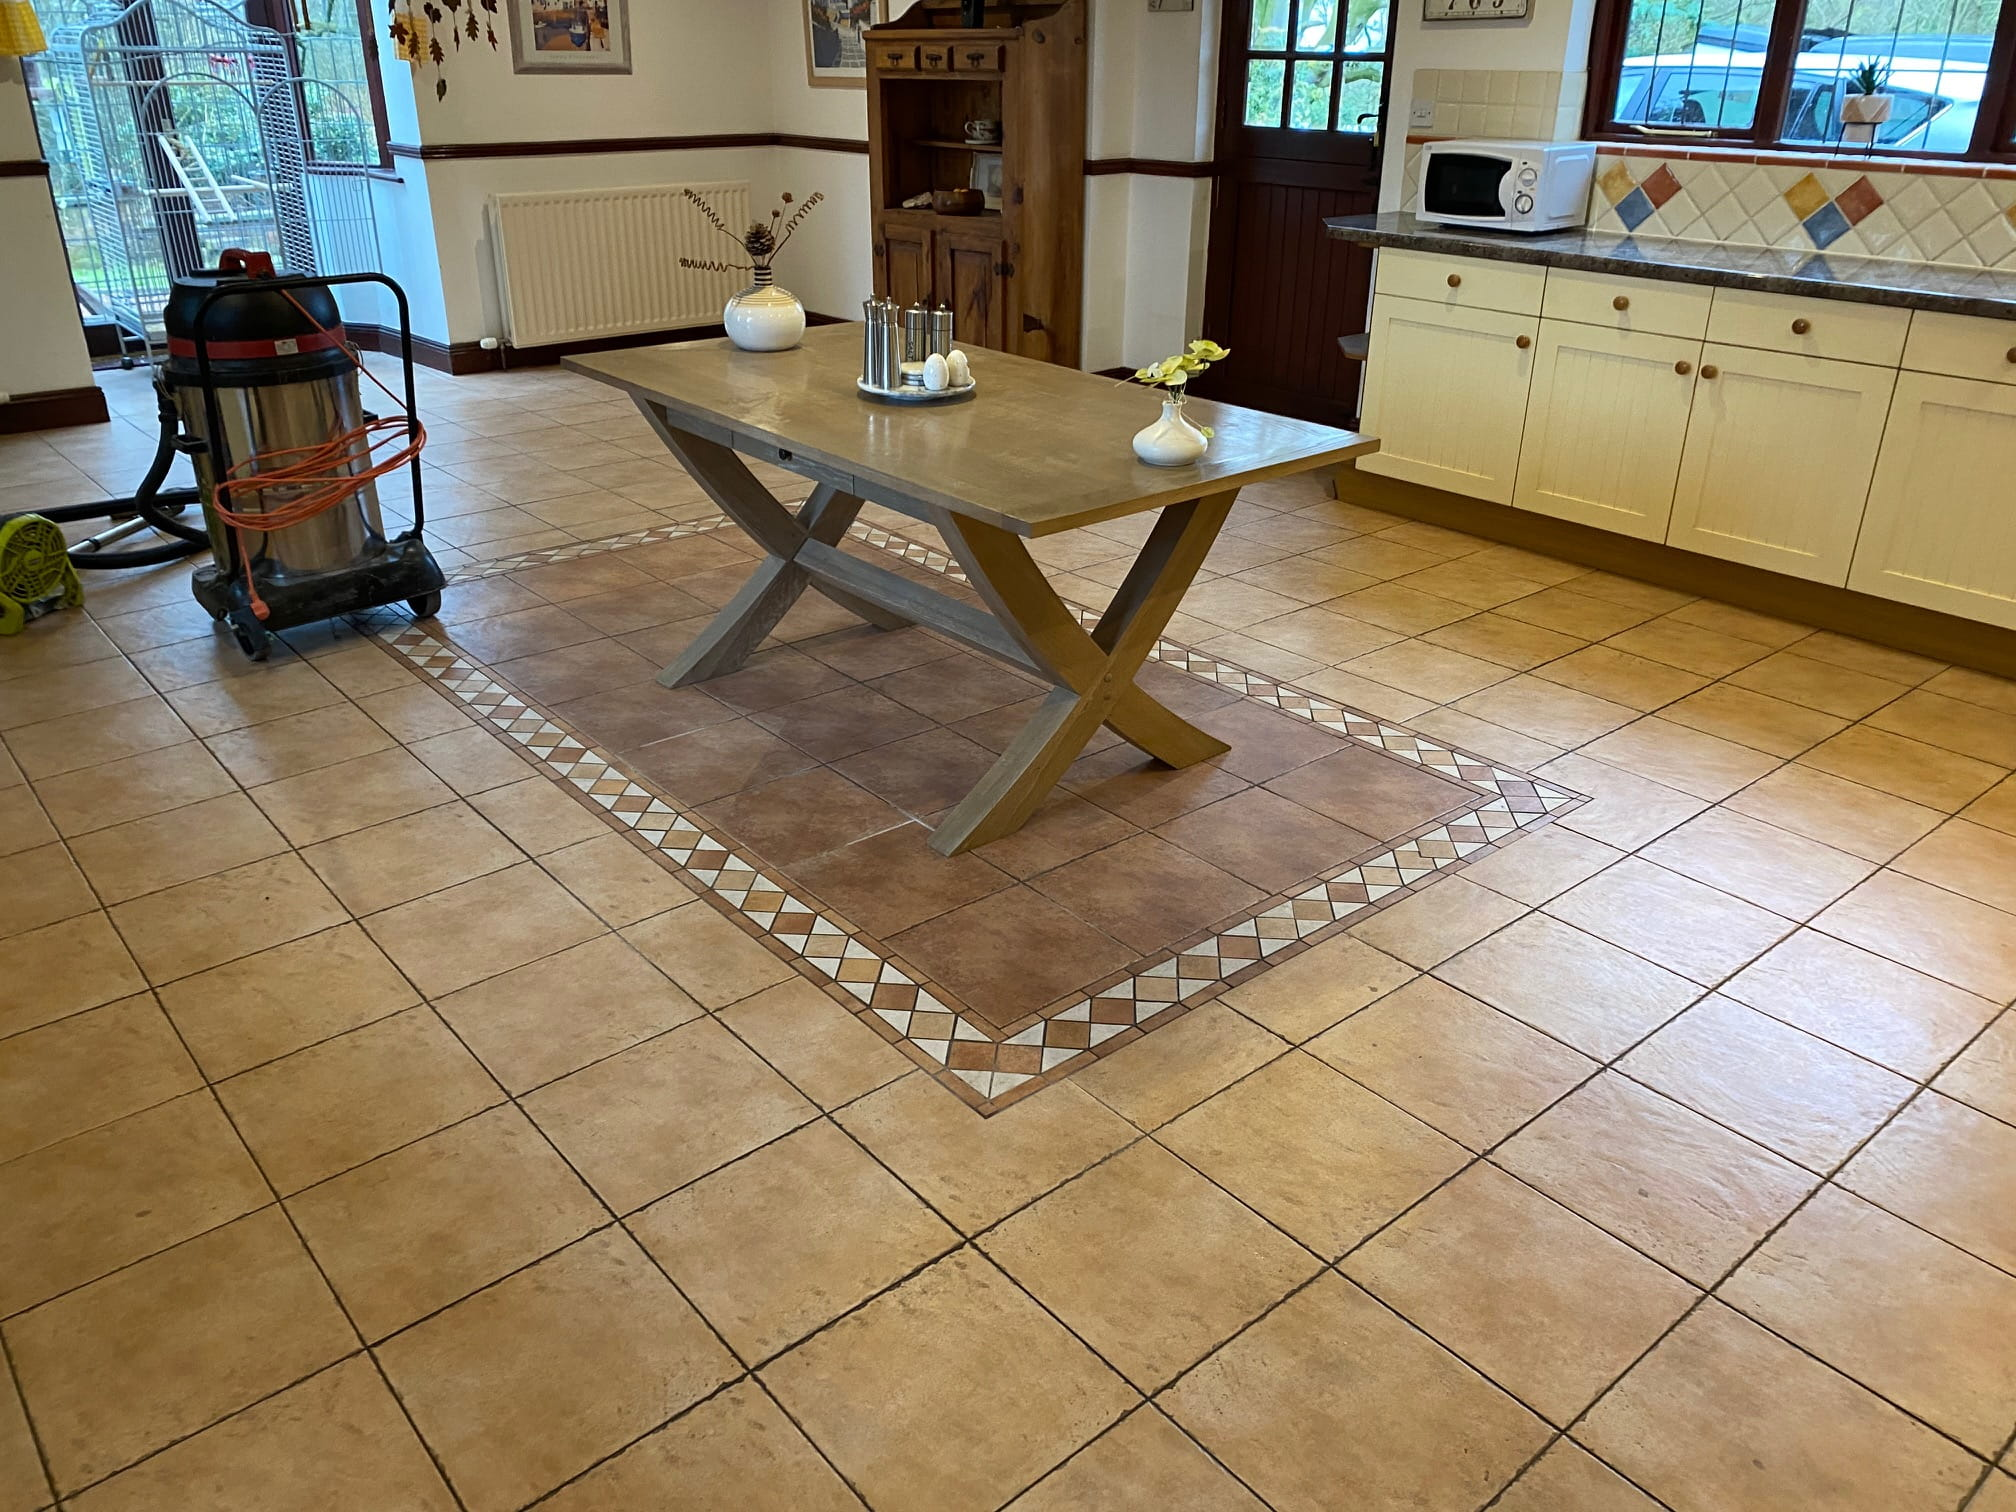 Ceramic Tiled Kitchen Floor Before Grout Colouring Keswick